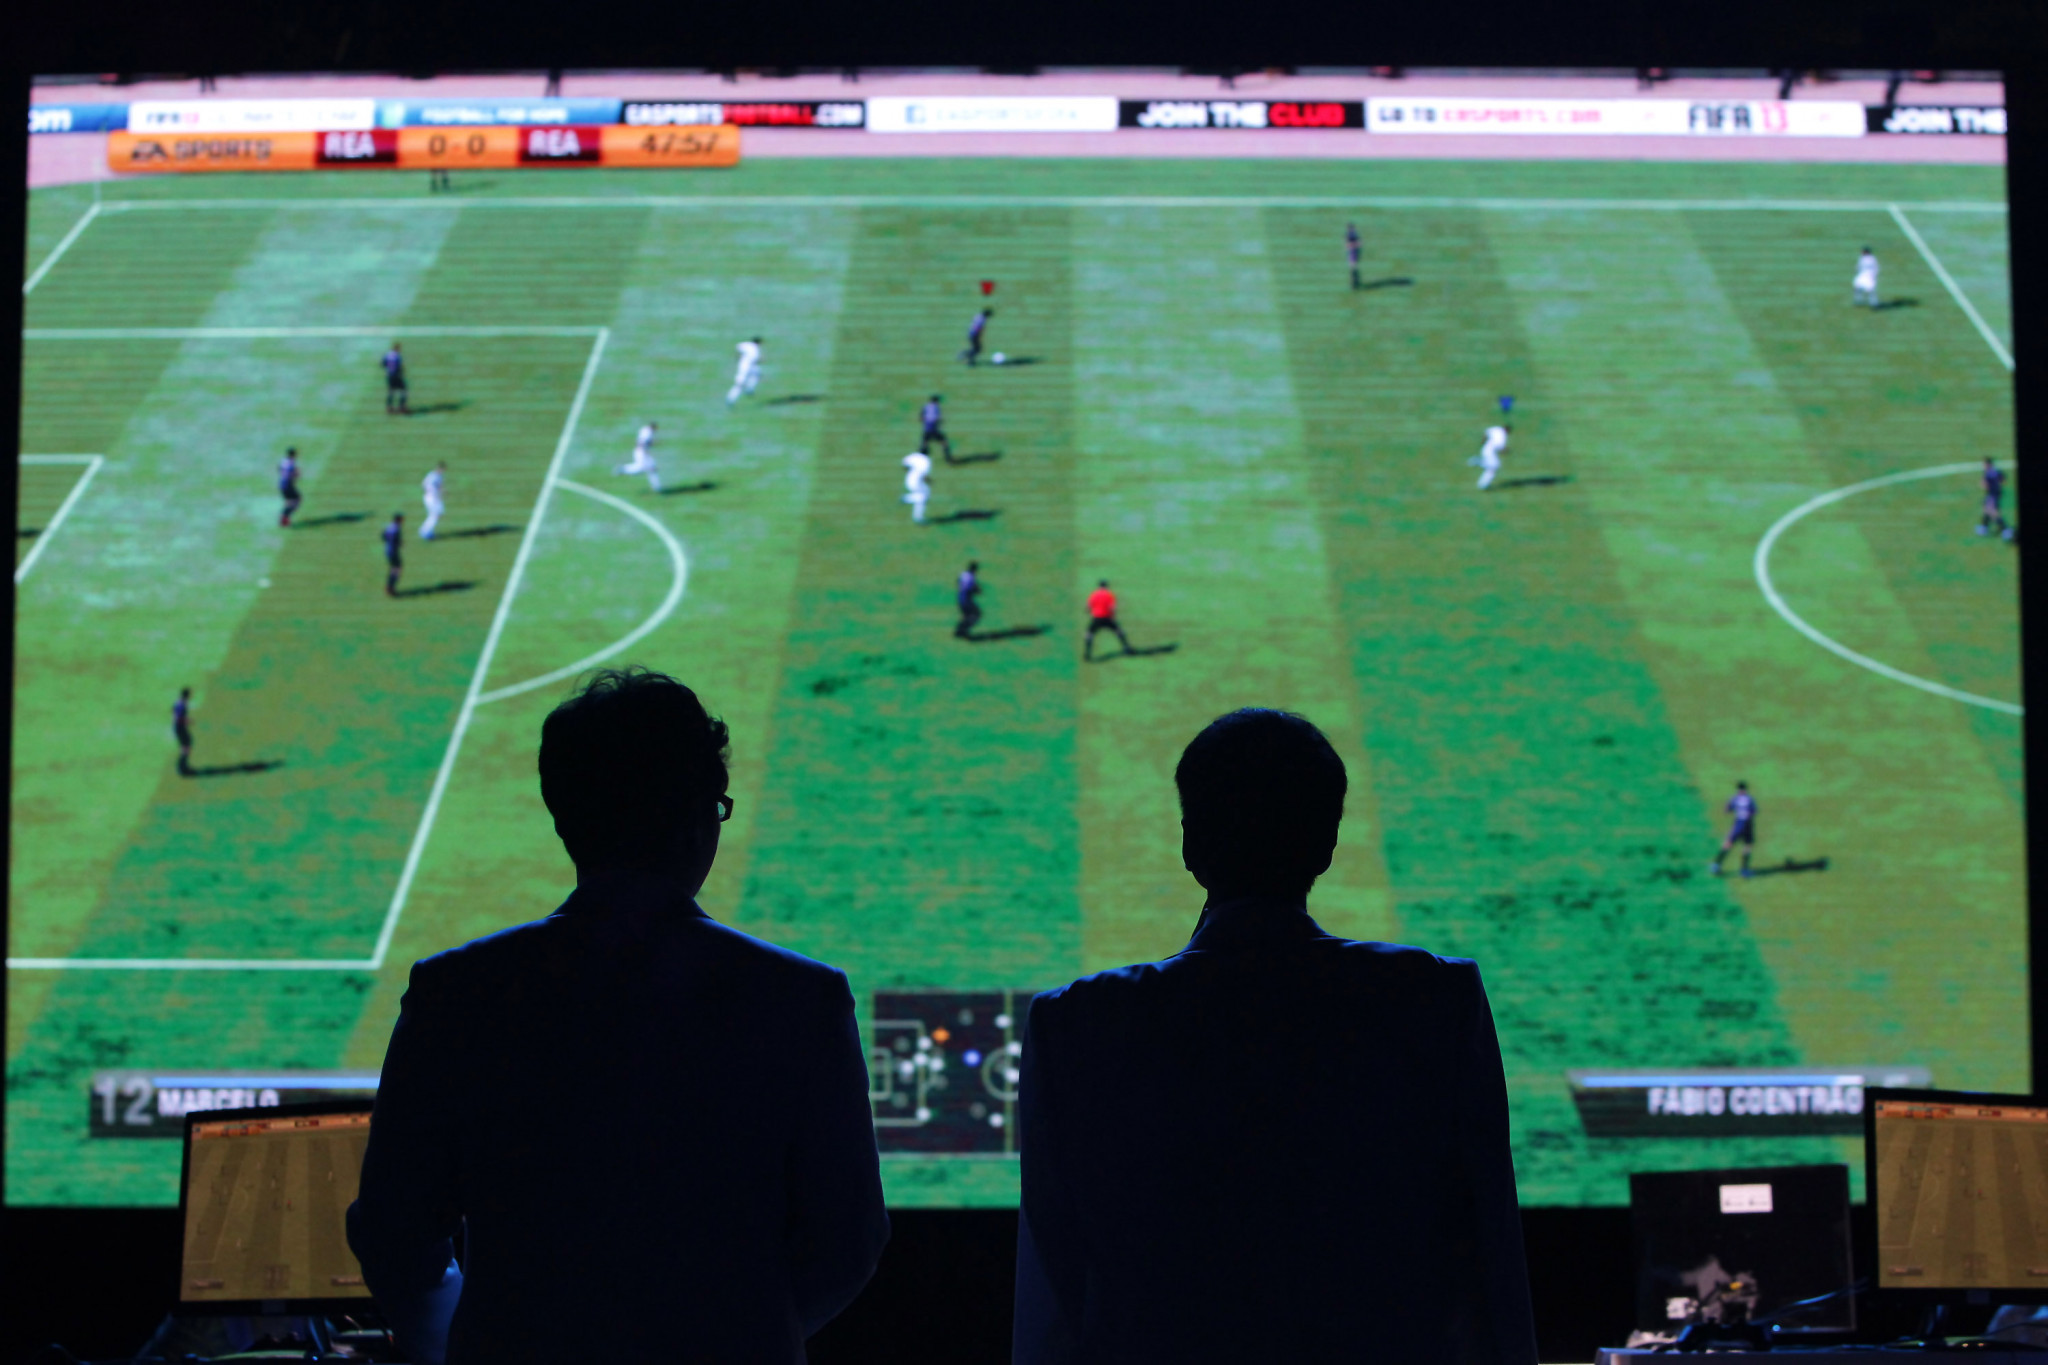 FIFA and EA Sports expand FIFA 22 esports competition to feature players from more than 70 countries